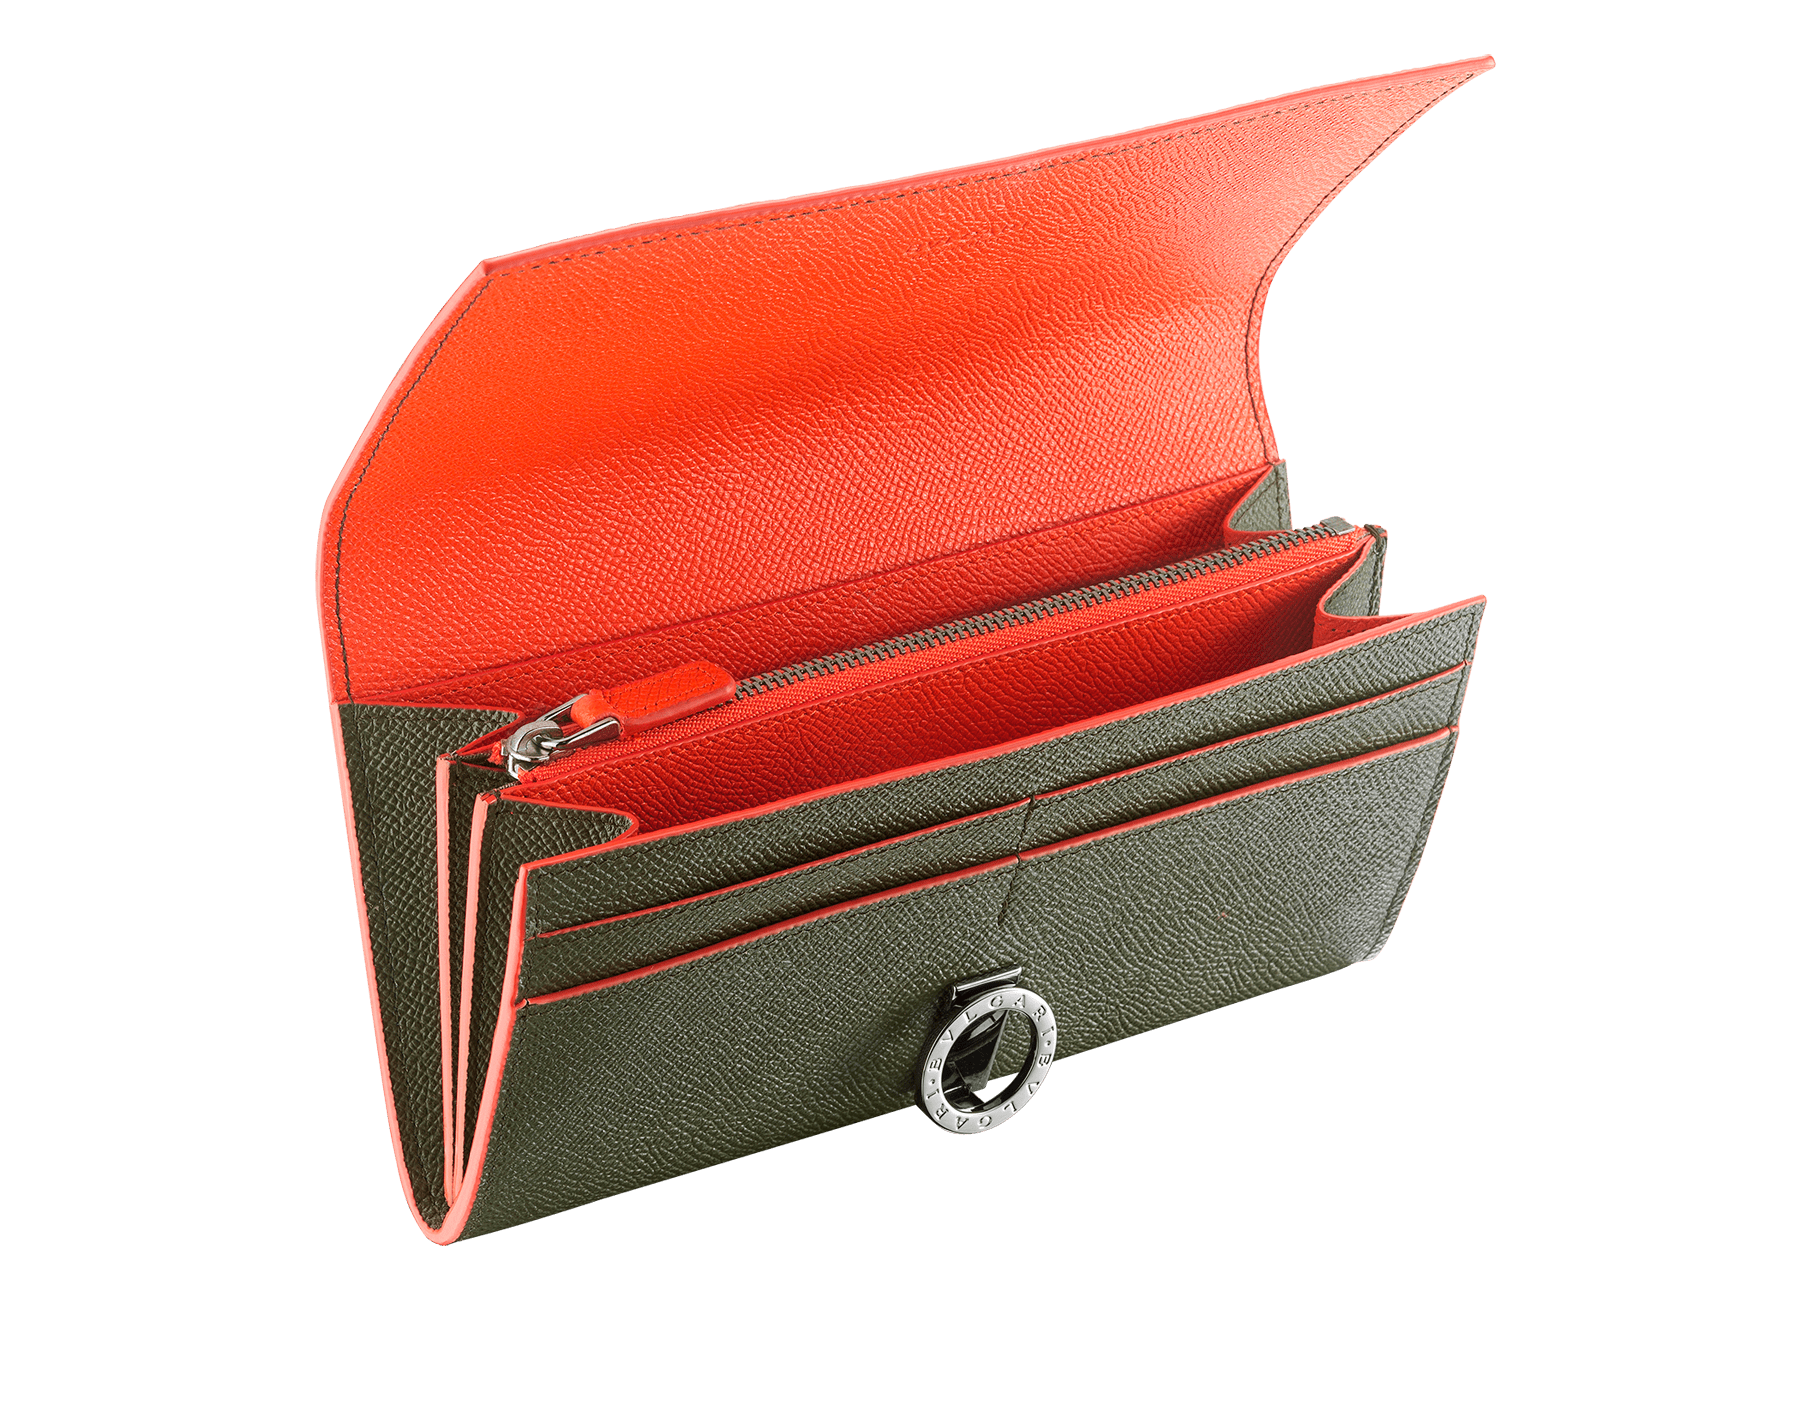 """""""BVLGARI BVLGARI"""" large wallet in mimetic jade and fire amber grain calf leather. Iconic logo clip closure in ruthenium plated brass. 289858 image 2"""